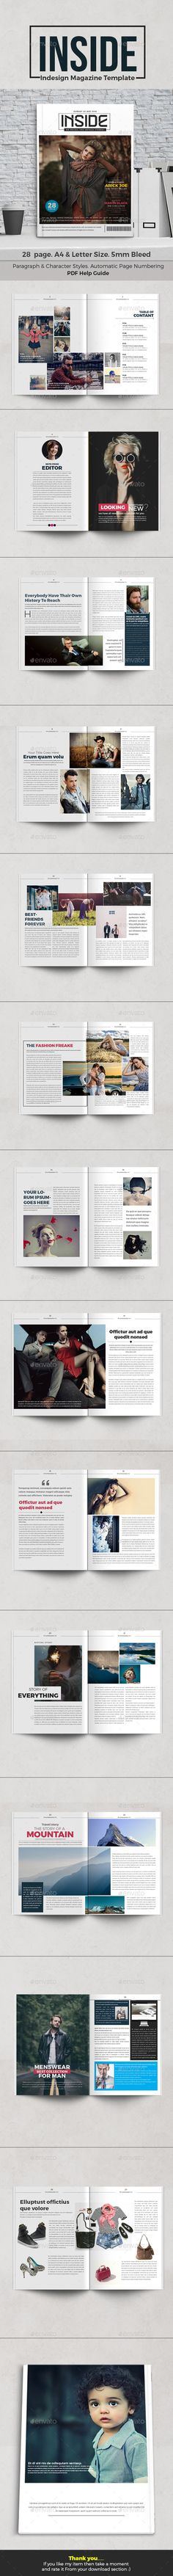 Inside - #Magazine Template - Magazines Print Templates Download here: https://graphicriver.net/item/inside-magazine-template/17762052?ref=classicdesignp